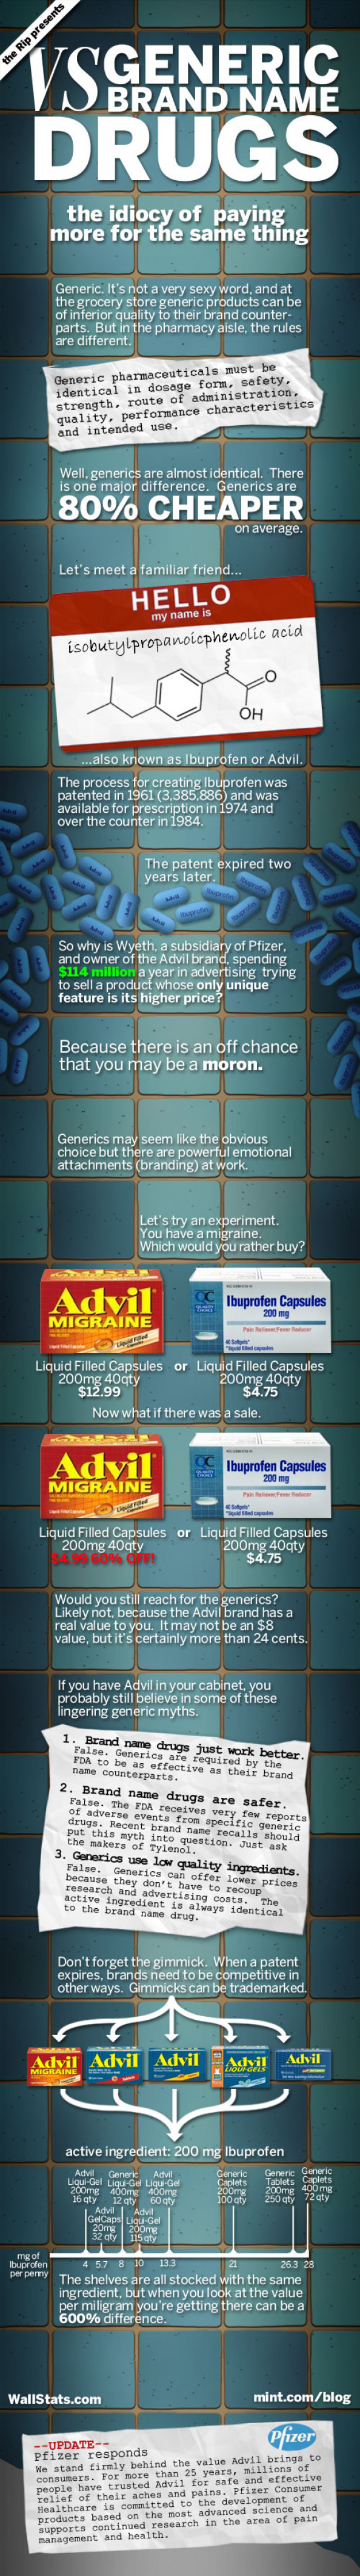 Generic vs Brand Name Drugs Infographic